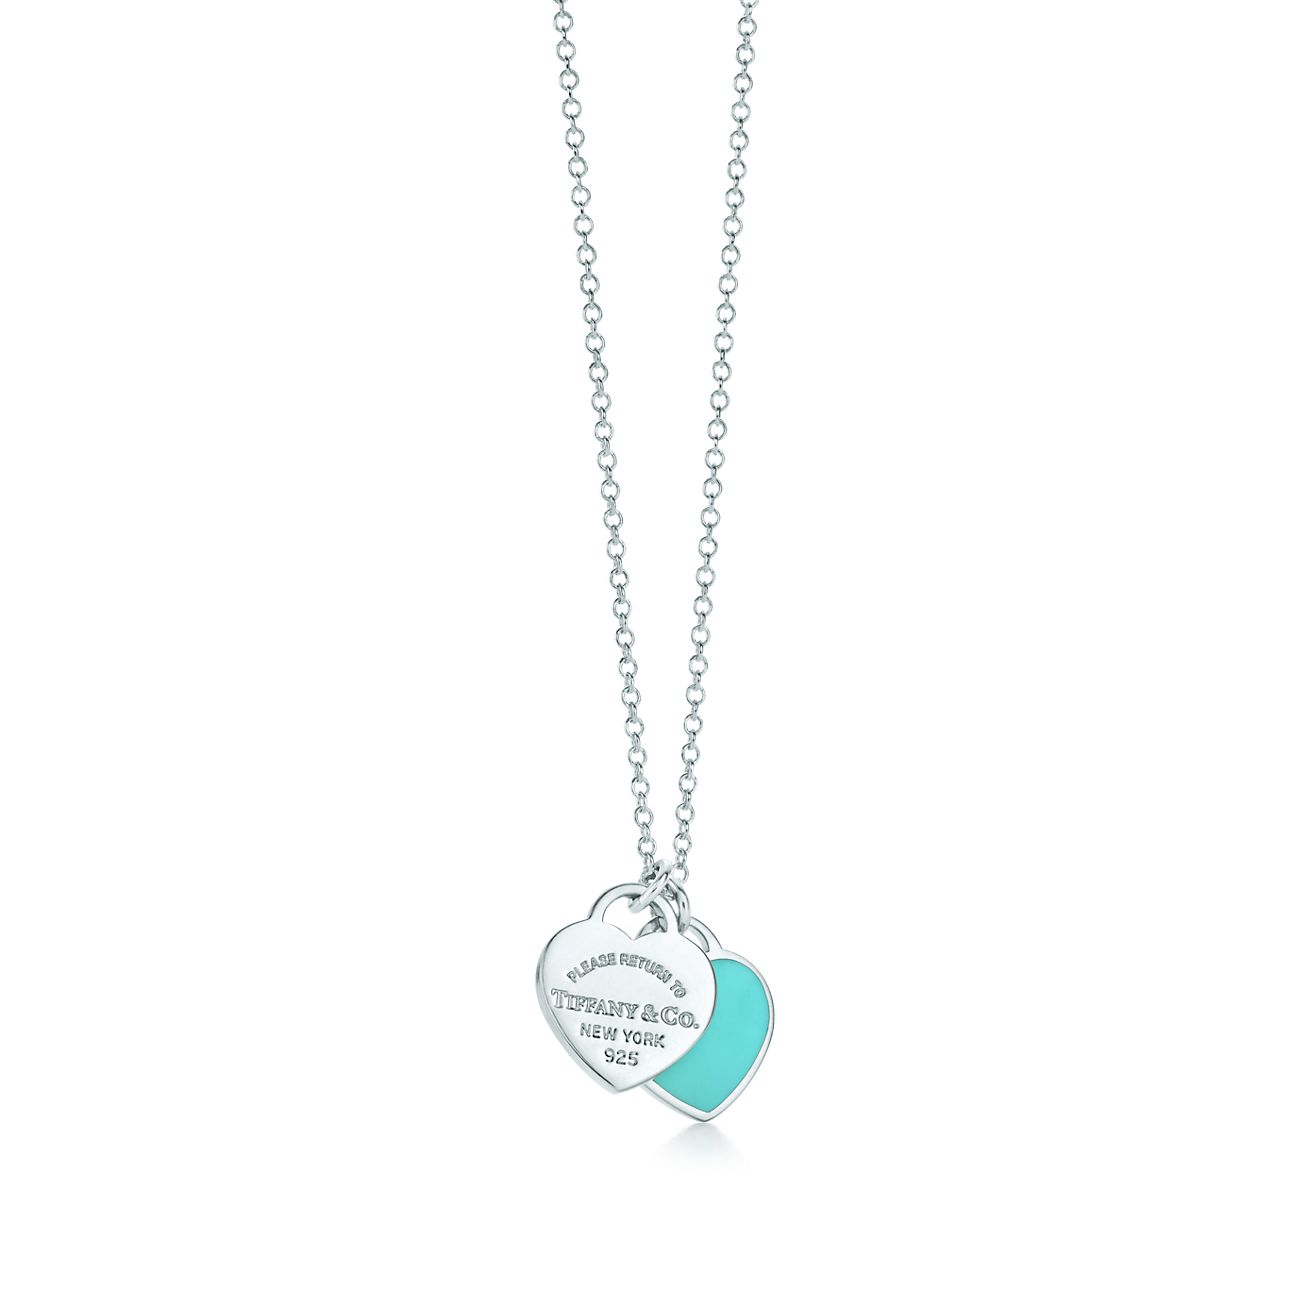 Return to tiffany mini double heart tag pendant in silver with return to tiffanymini double heart tagbrpendant aloadofball Images